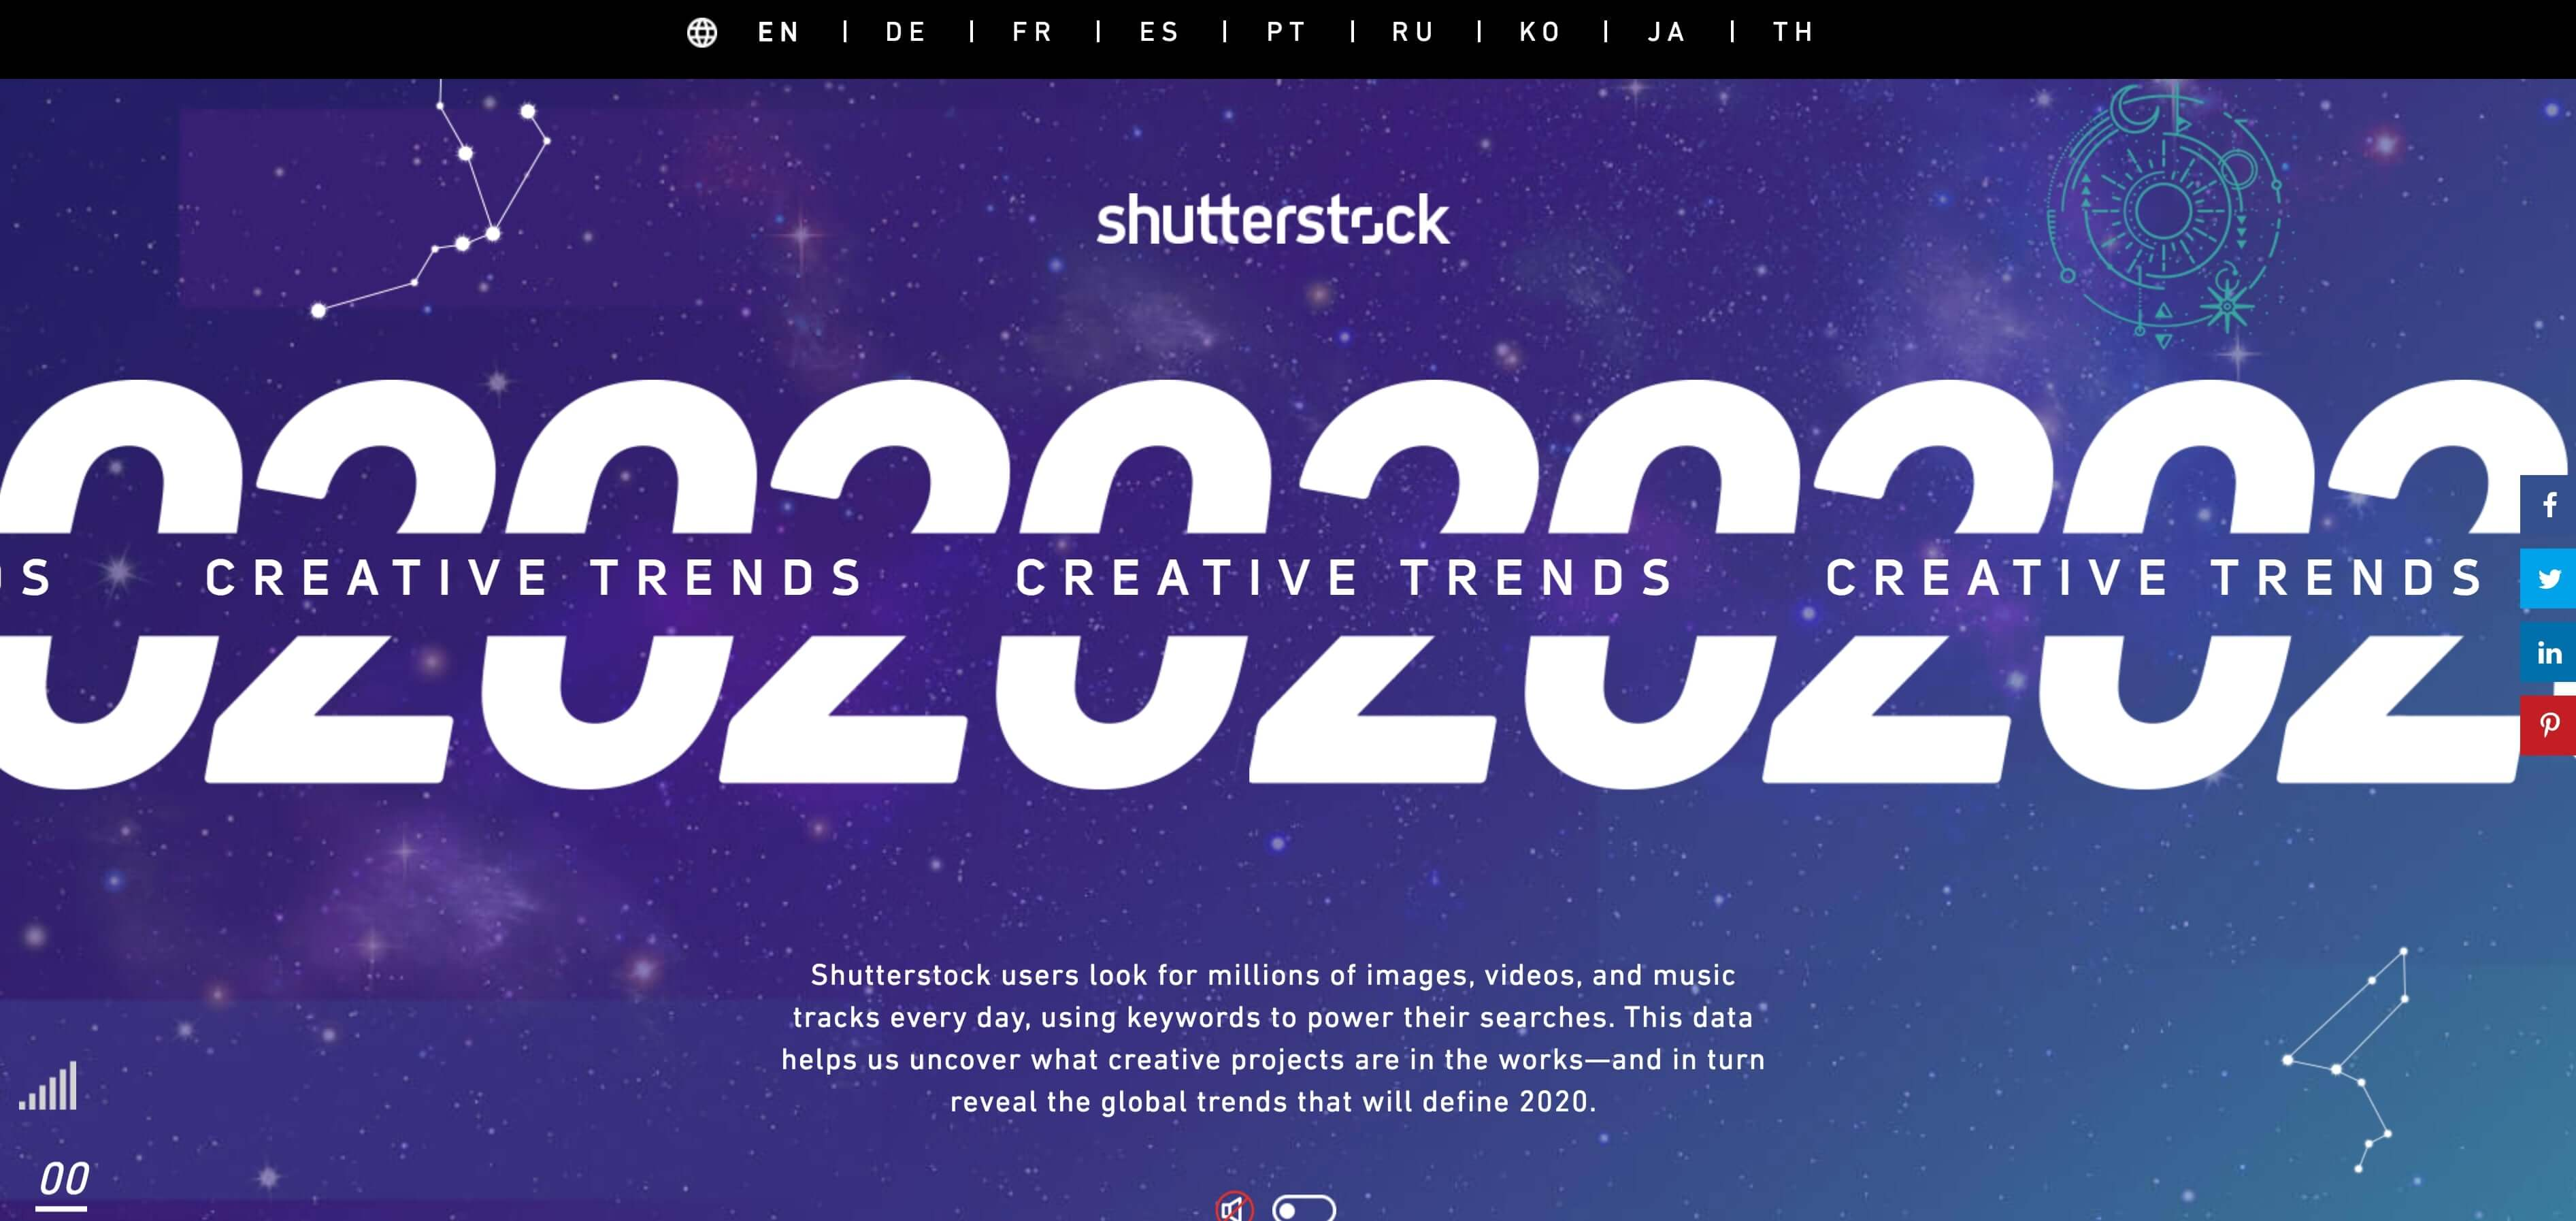 Shutterstock 2020 creative trends page (1)